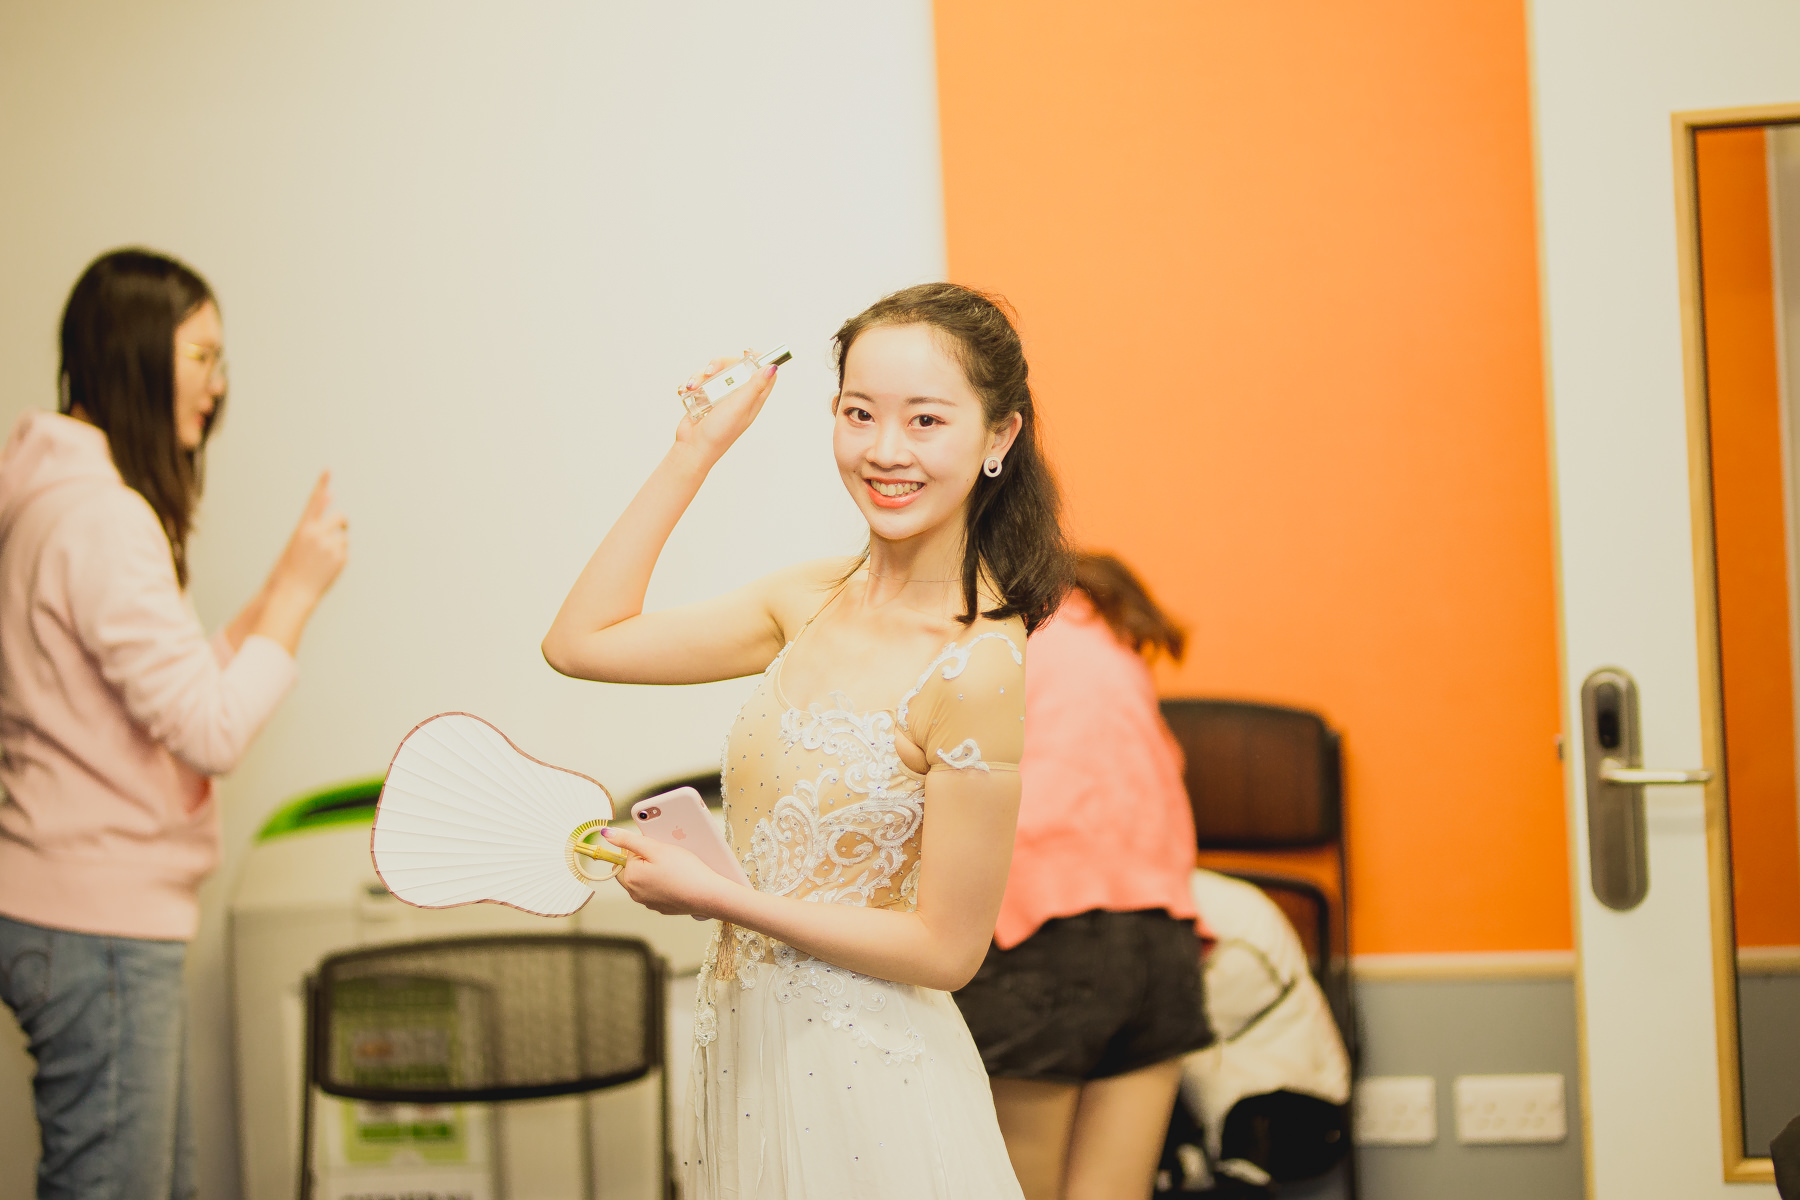 Chinese Ballet Dancer at University of Sussex Event Photography Sigma 85mm